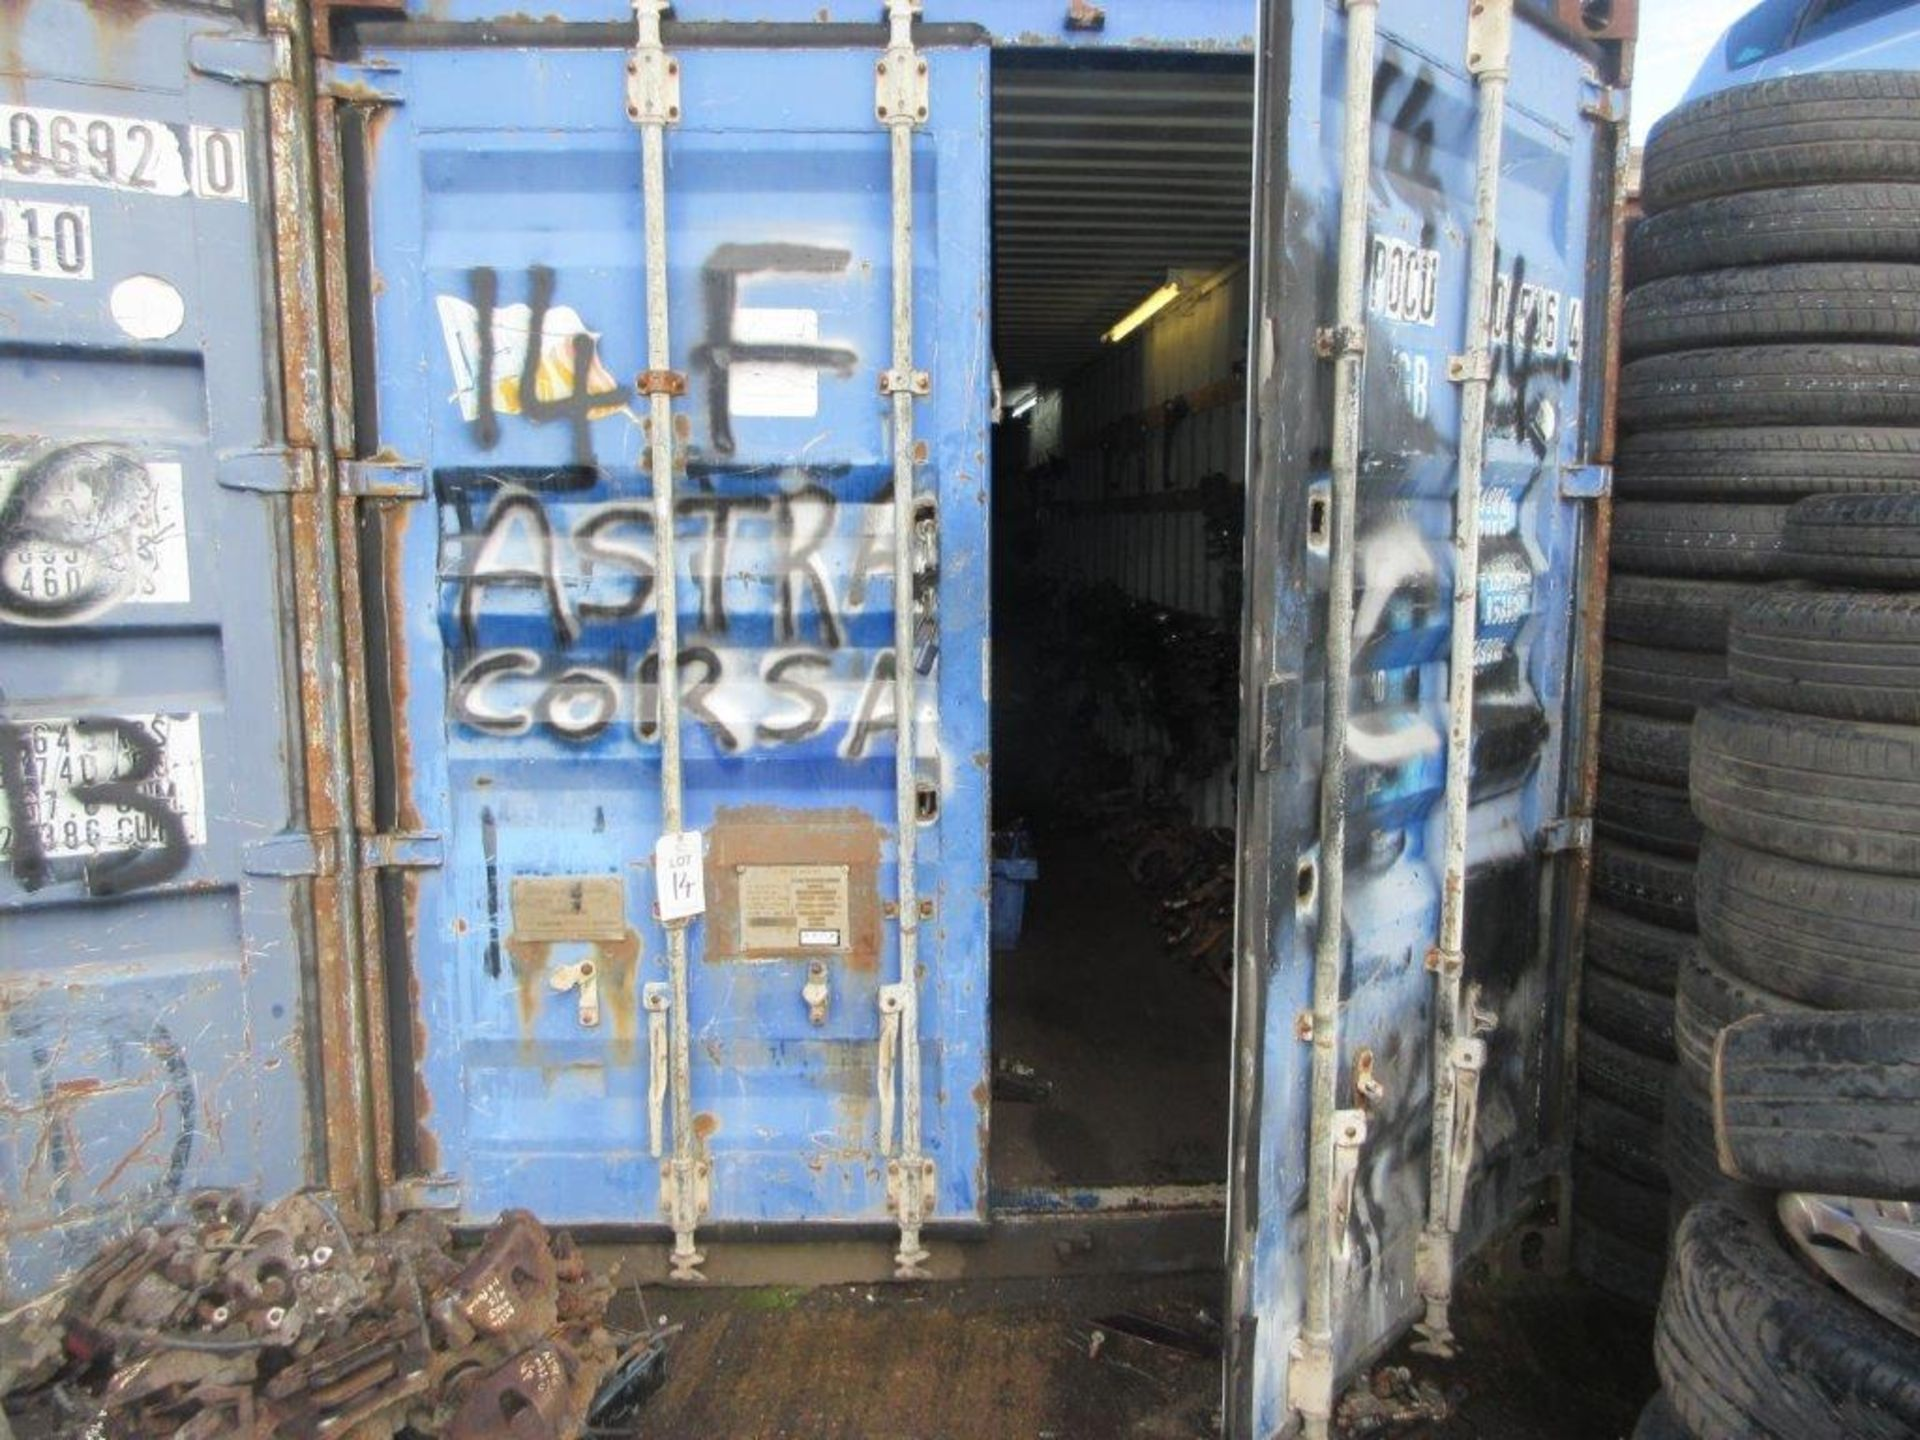 Lot 14 - Blue steel shipping container, 40 ft. x 8 ft. approx. plus rack and contents of mainly Vauxhall